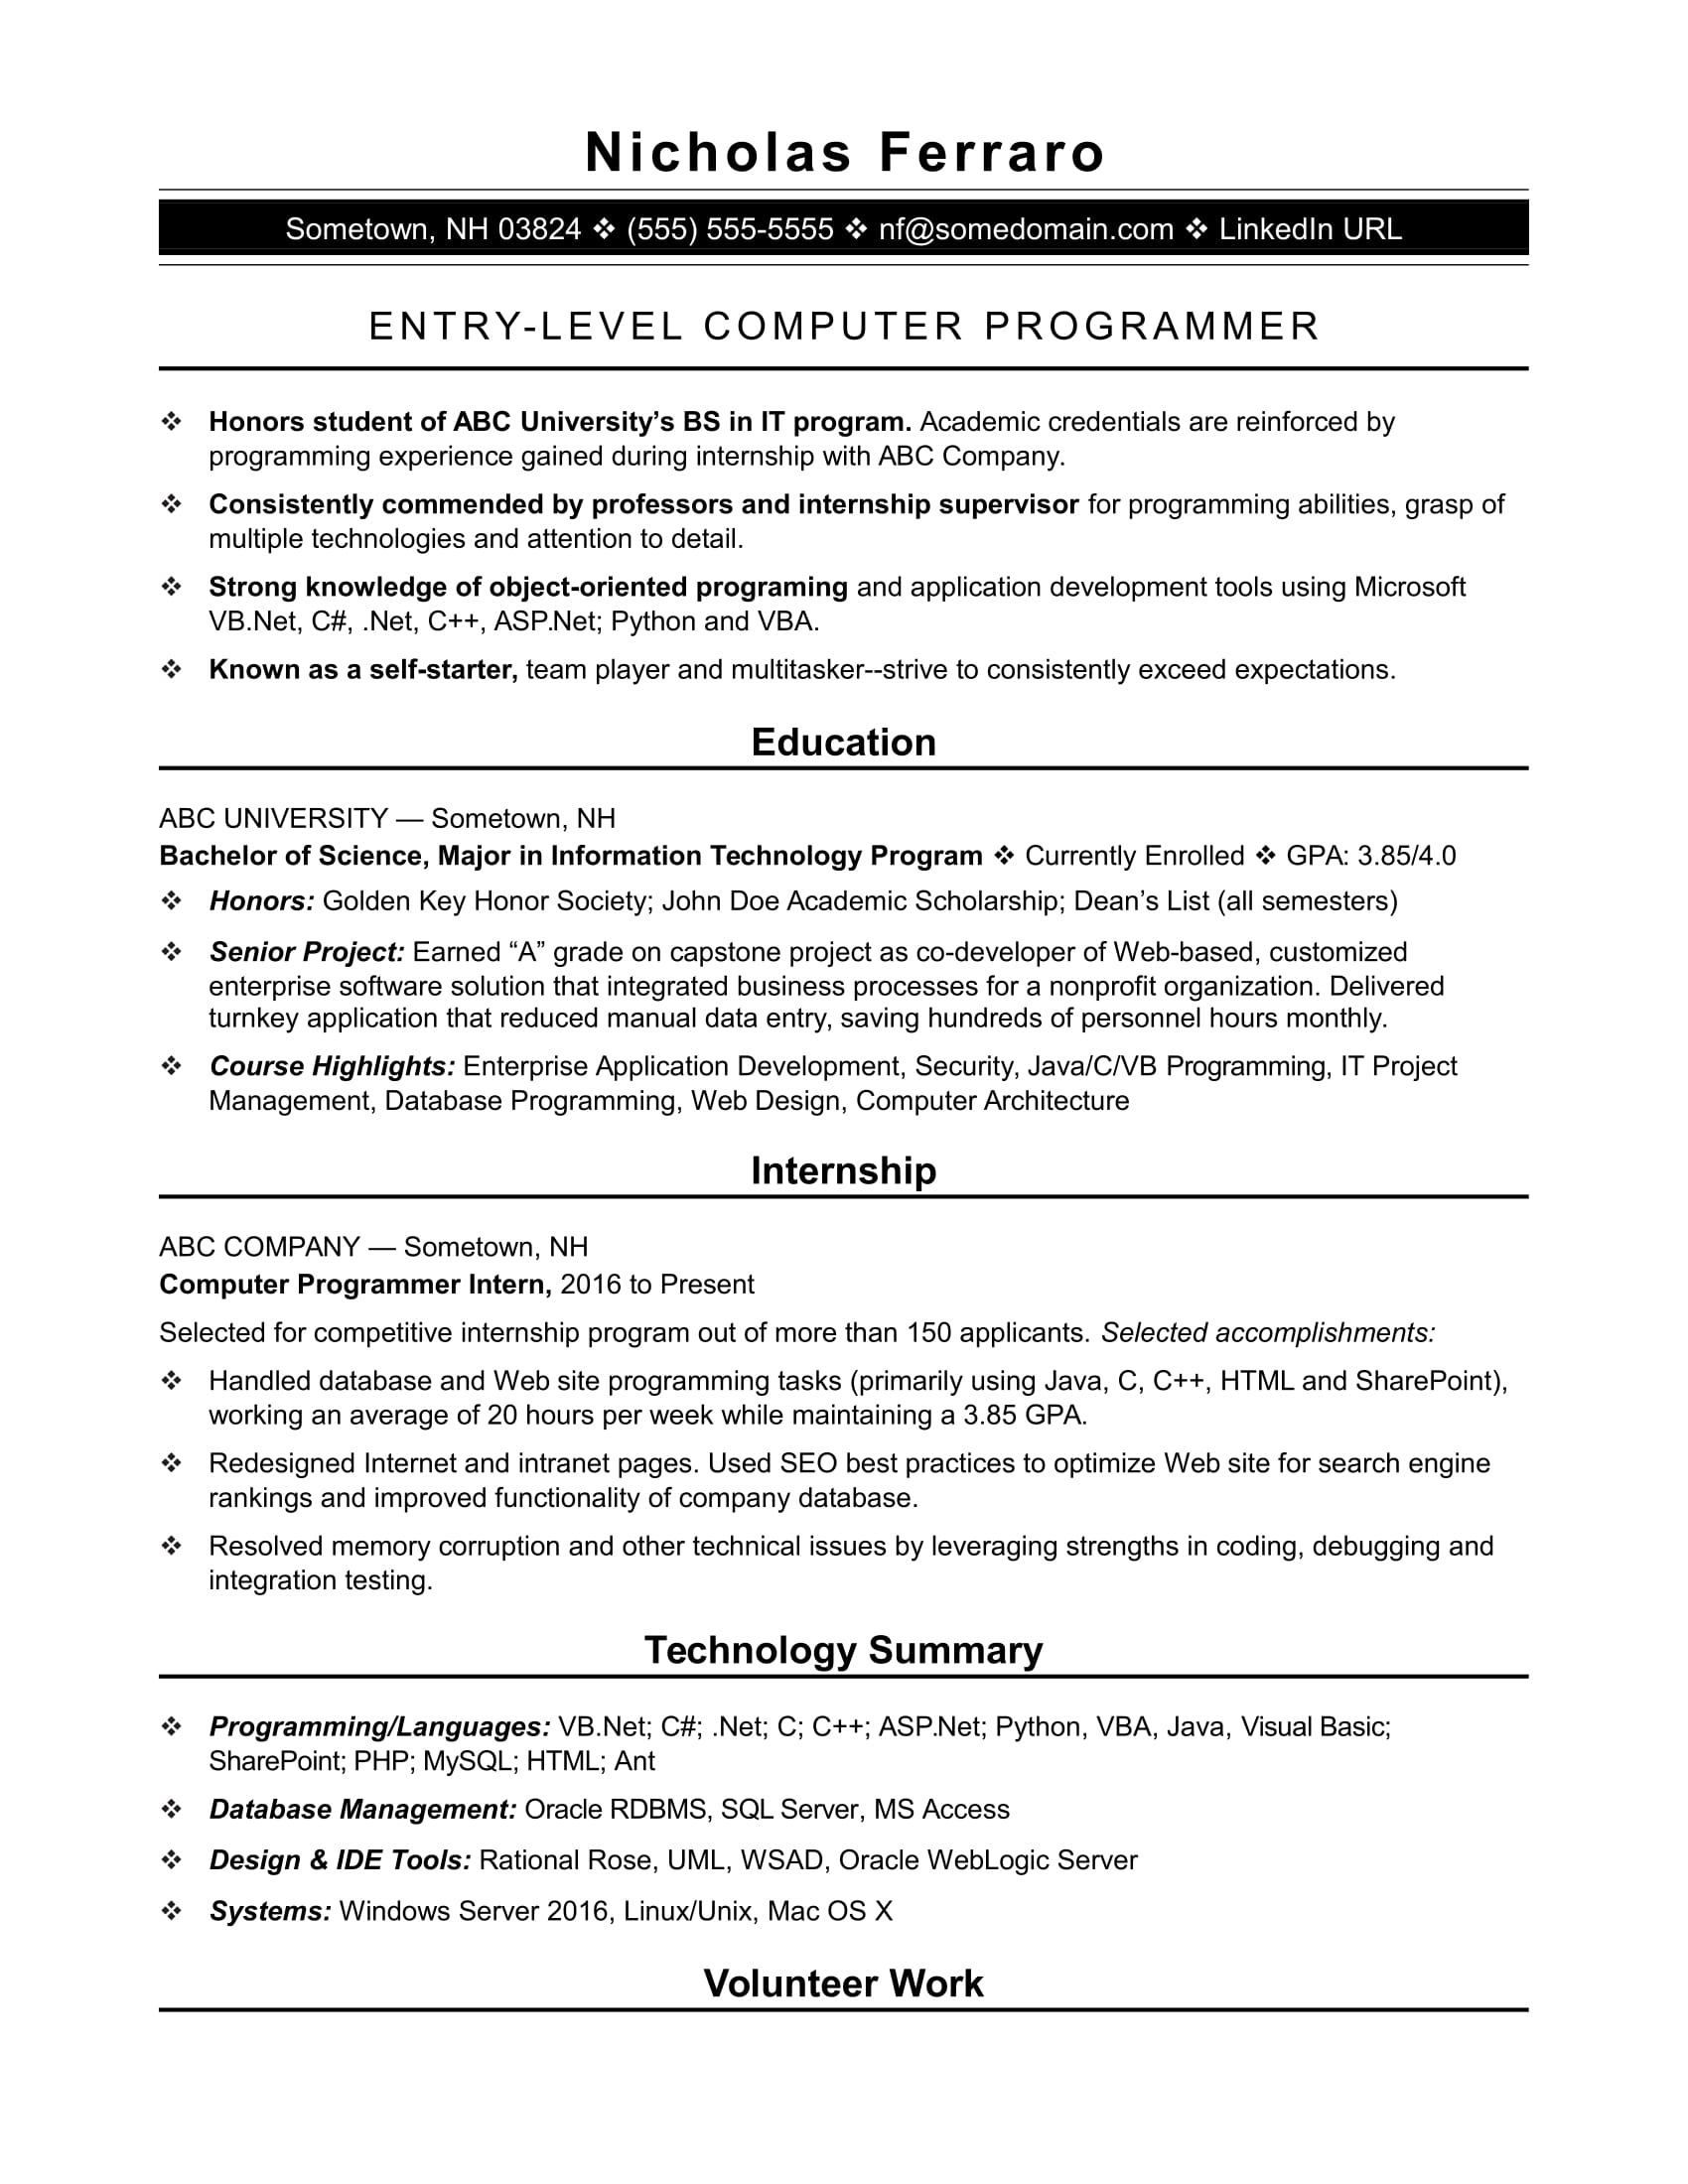 Computer Programming Resume Sample Resume For An Entrylevel Computer Programmer  Monster